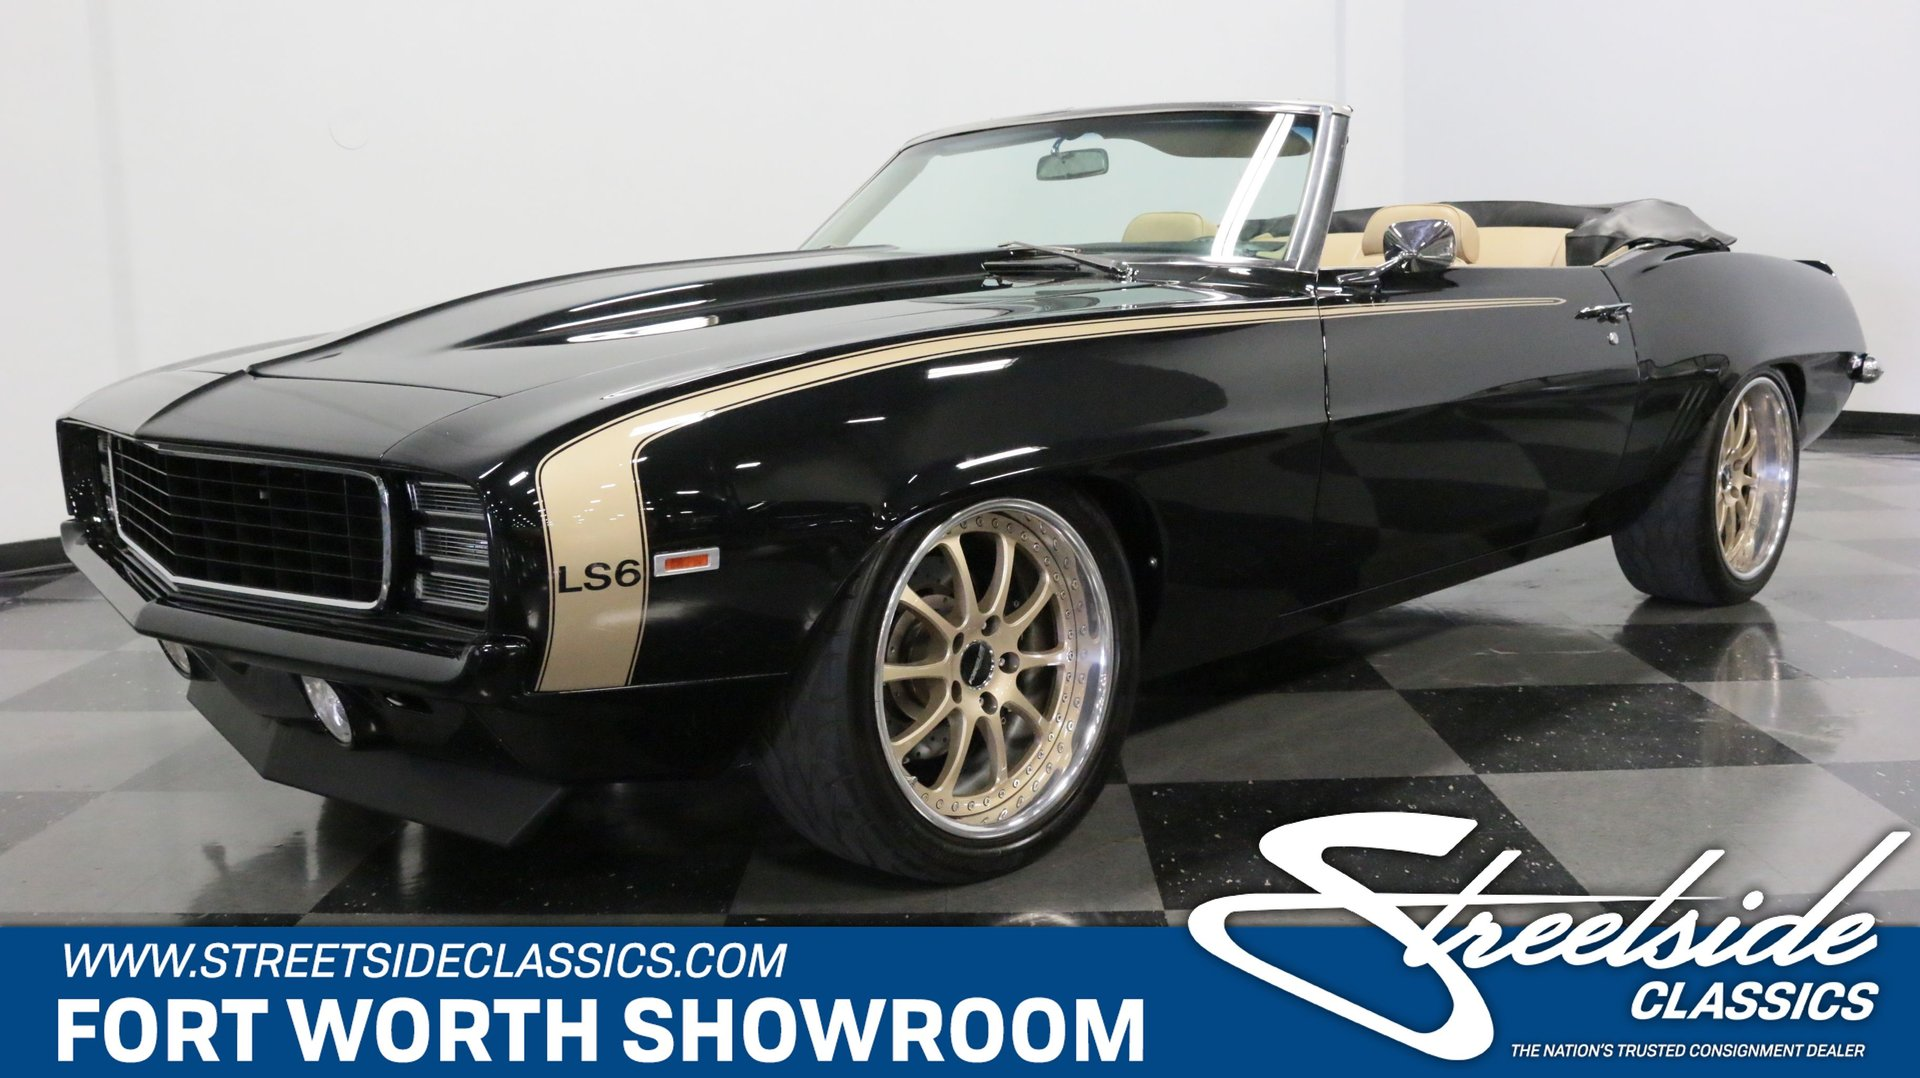 1969 Chevrolet Camaro RS LS6 Pro Touring Convertible for